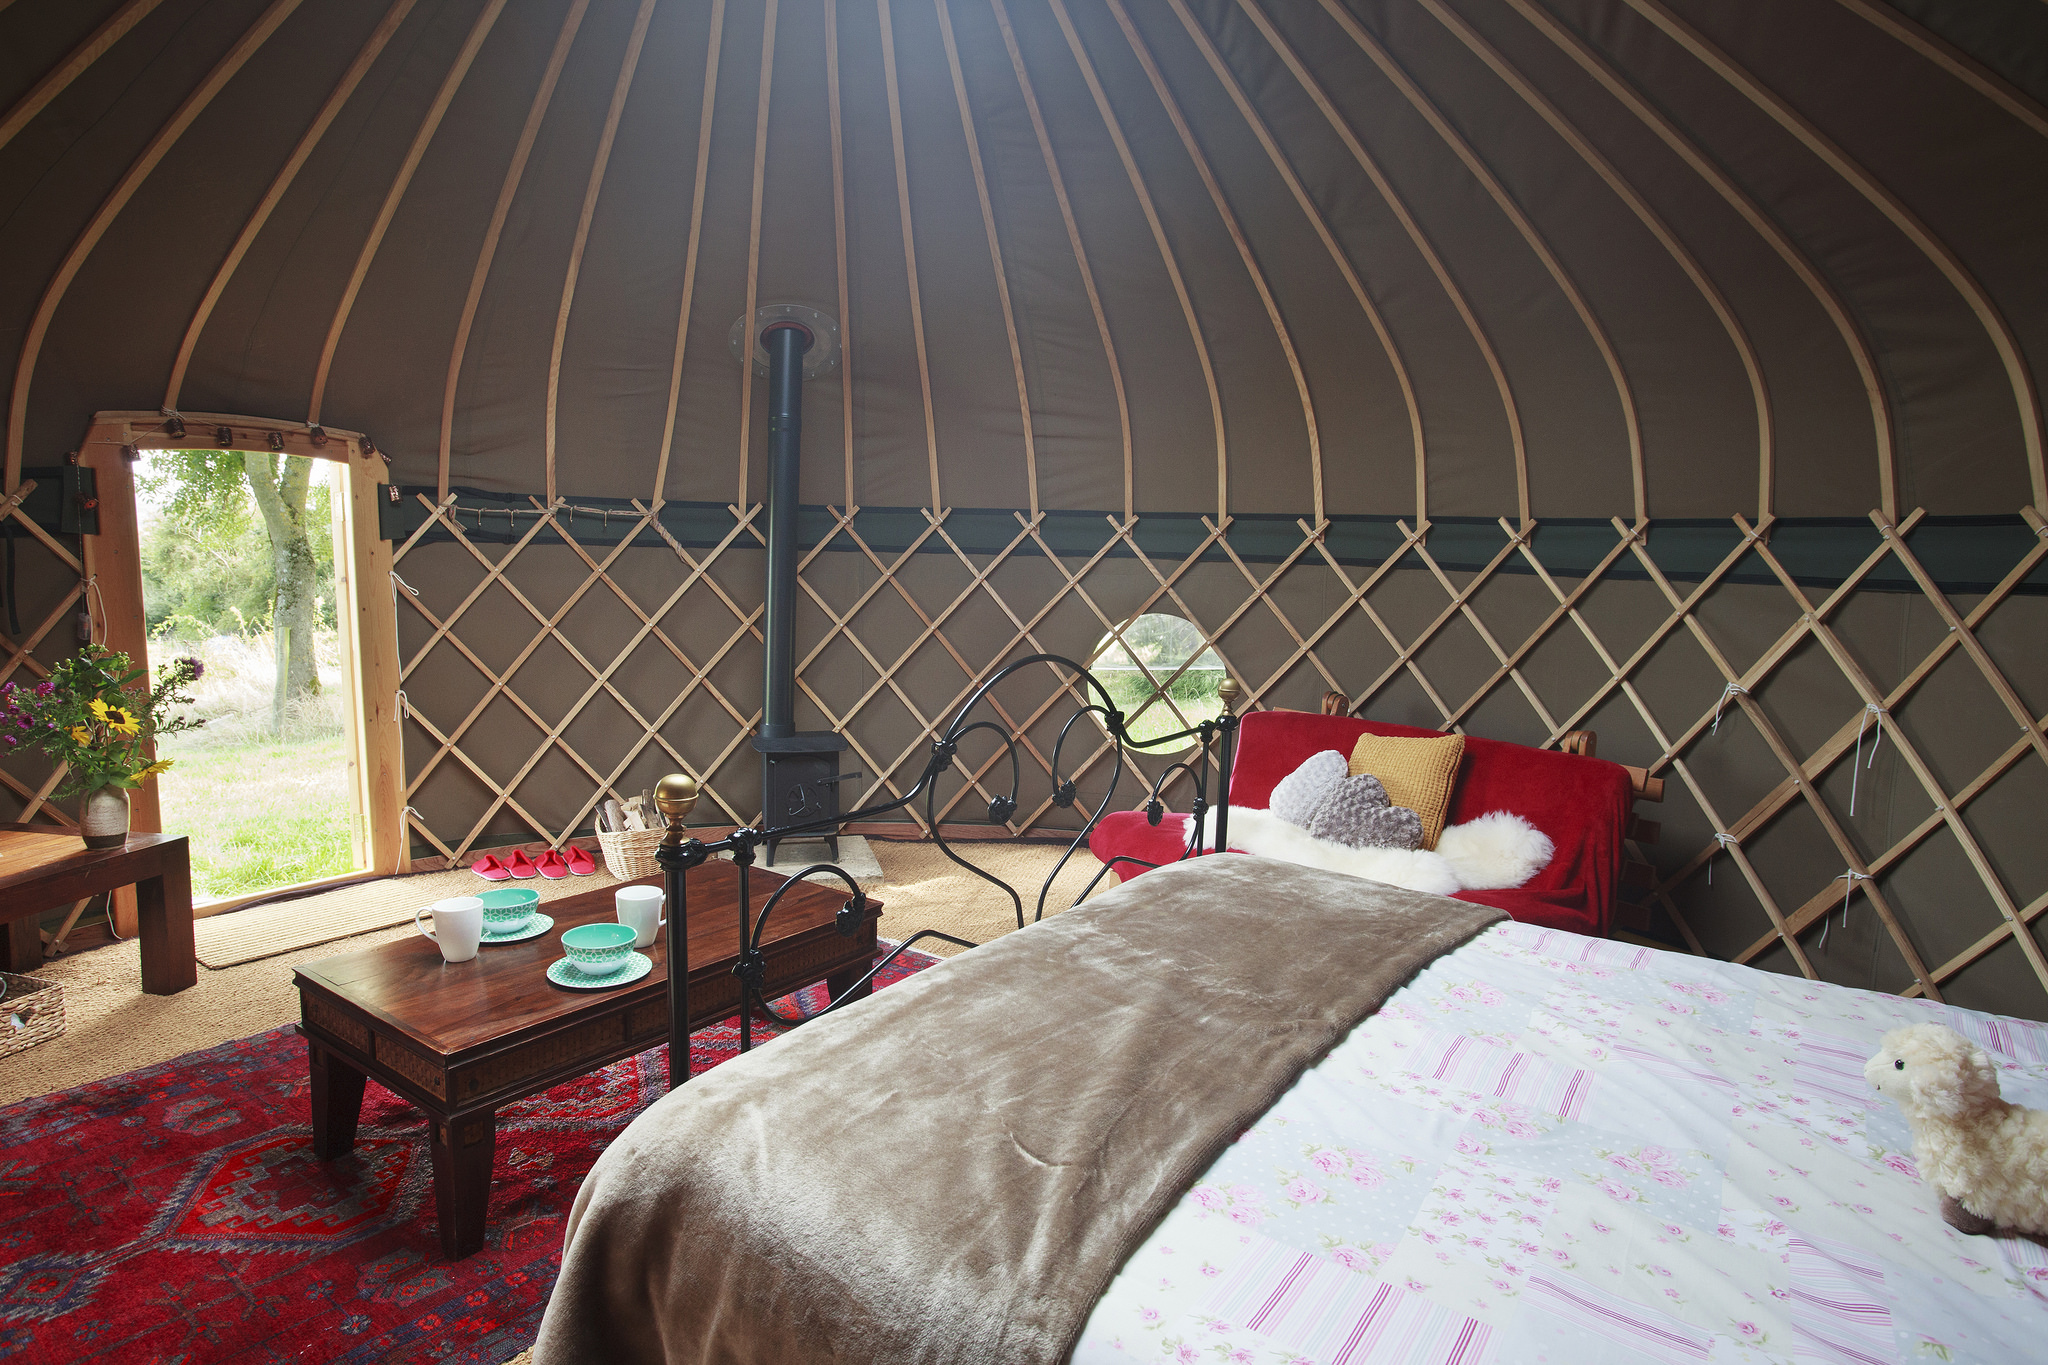 Inside the yurts